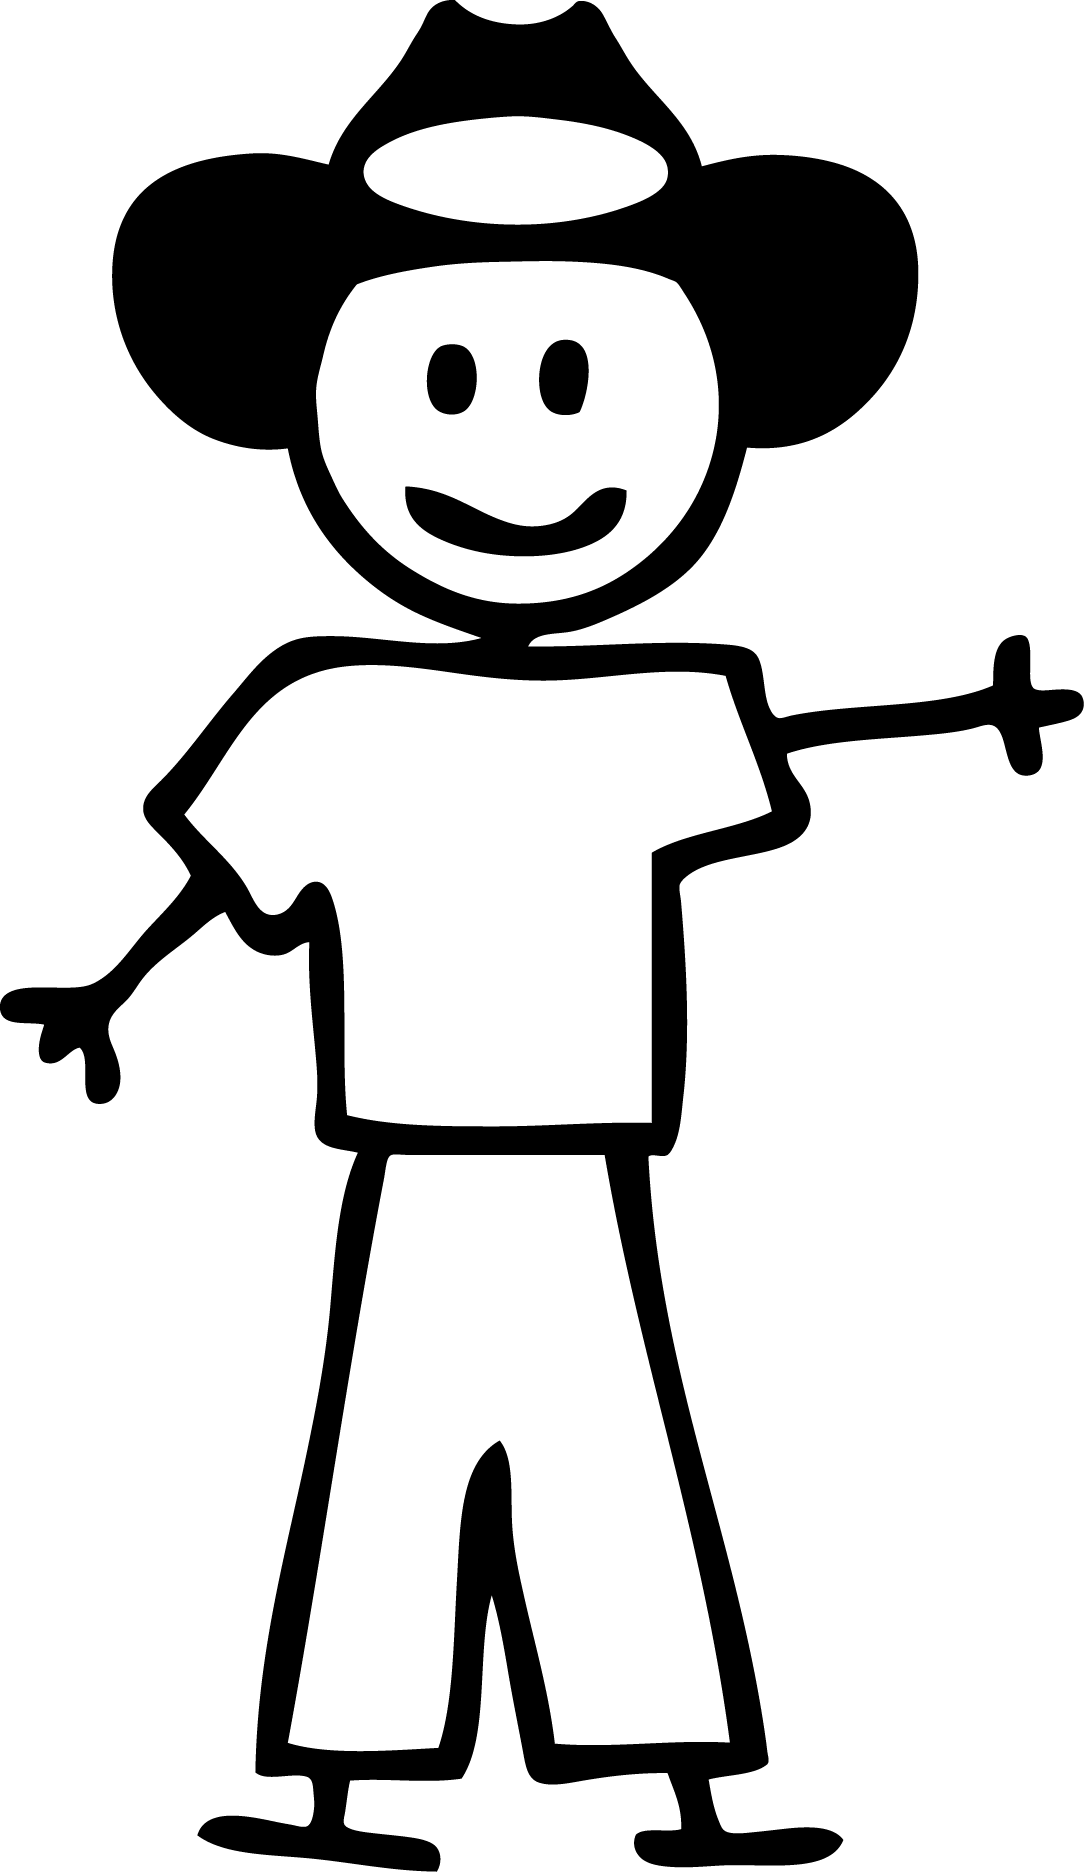 Stick figure dad clipart graphic freeuse library Stick Man Figures | Free download best Stick Man Figures on ... graphic freeuse library